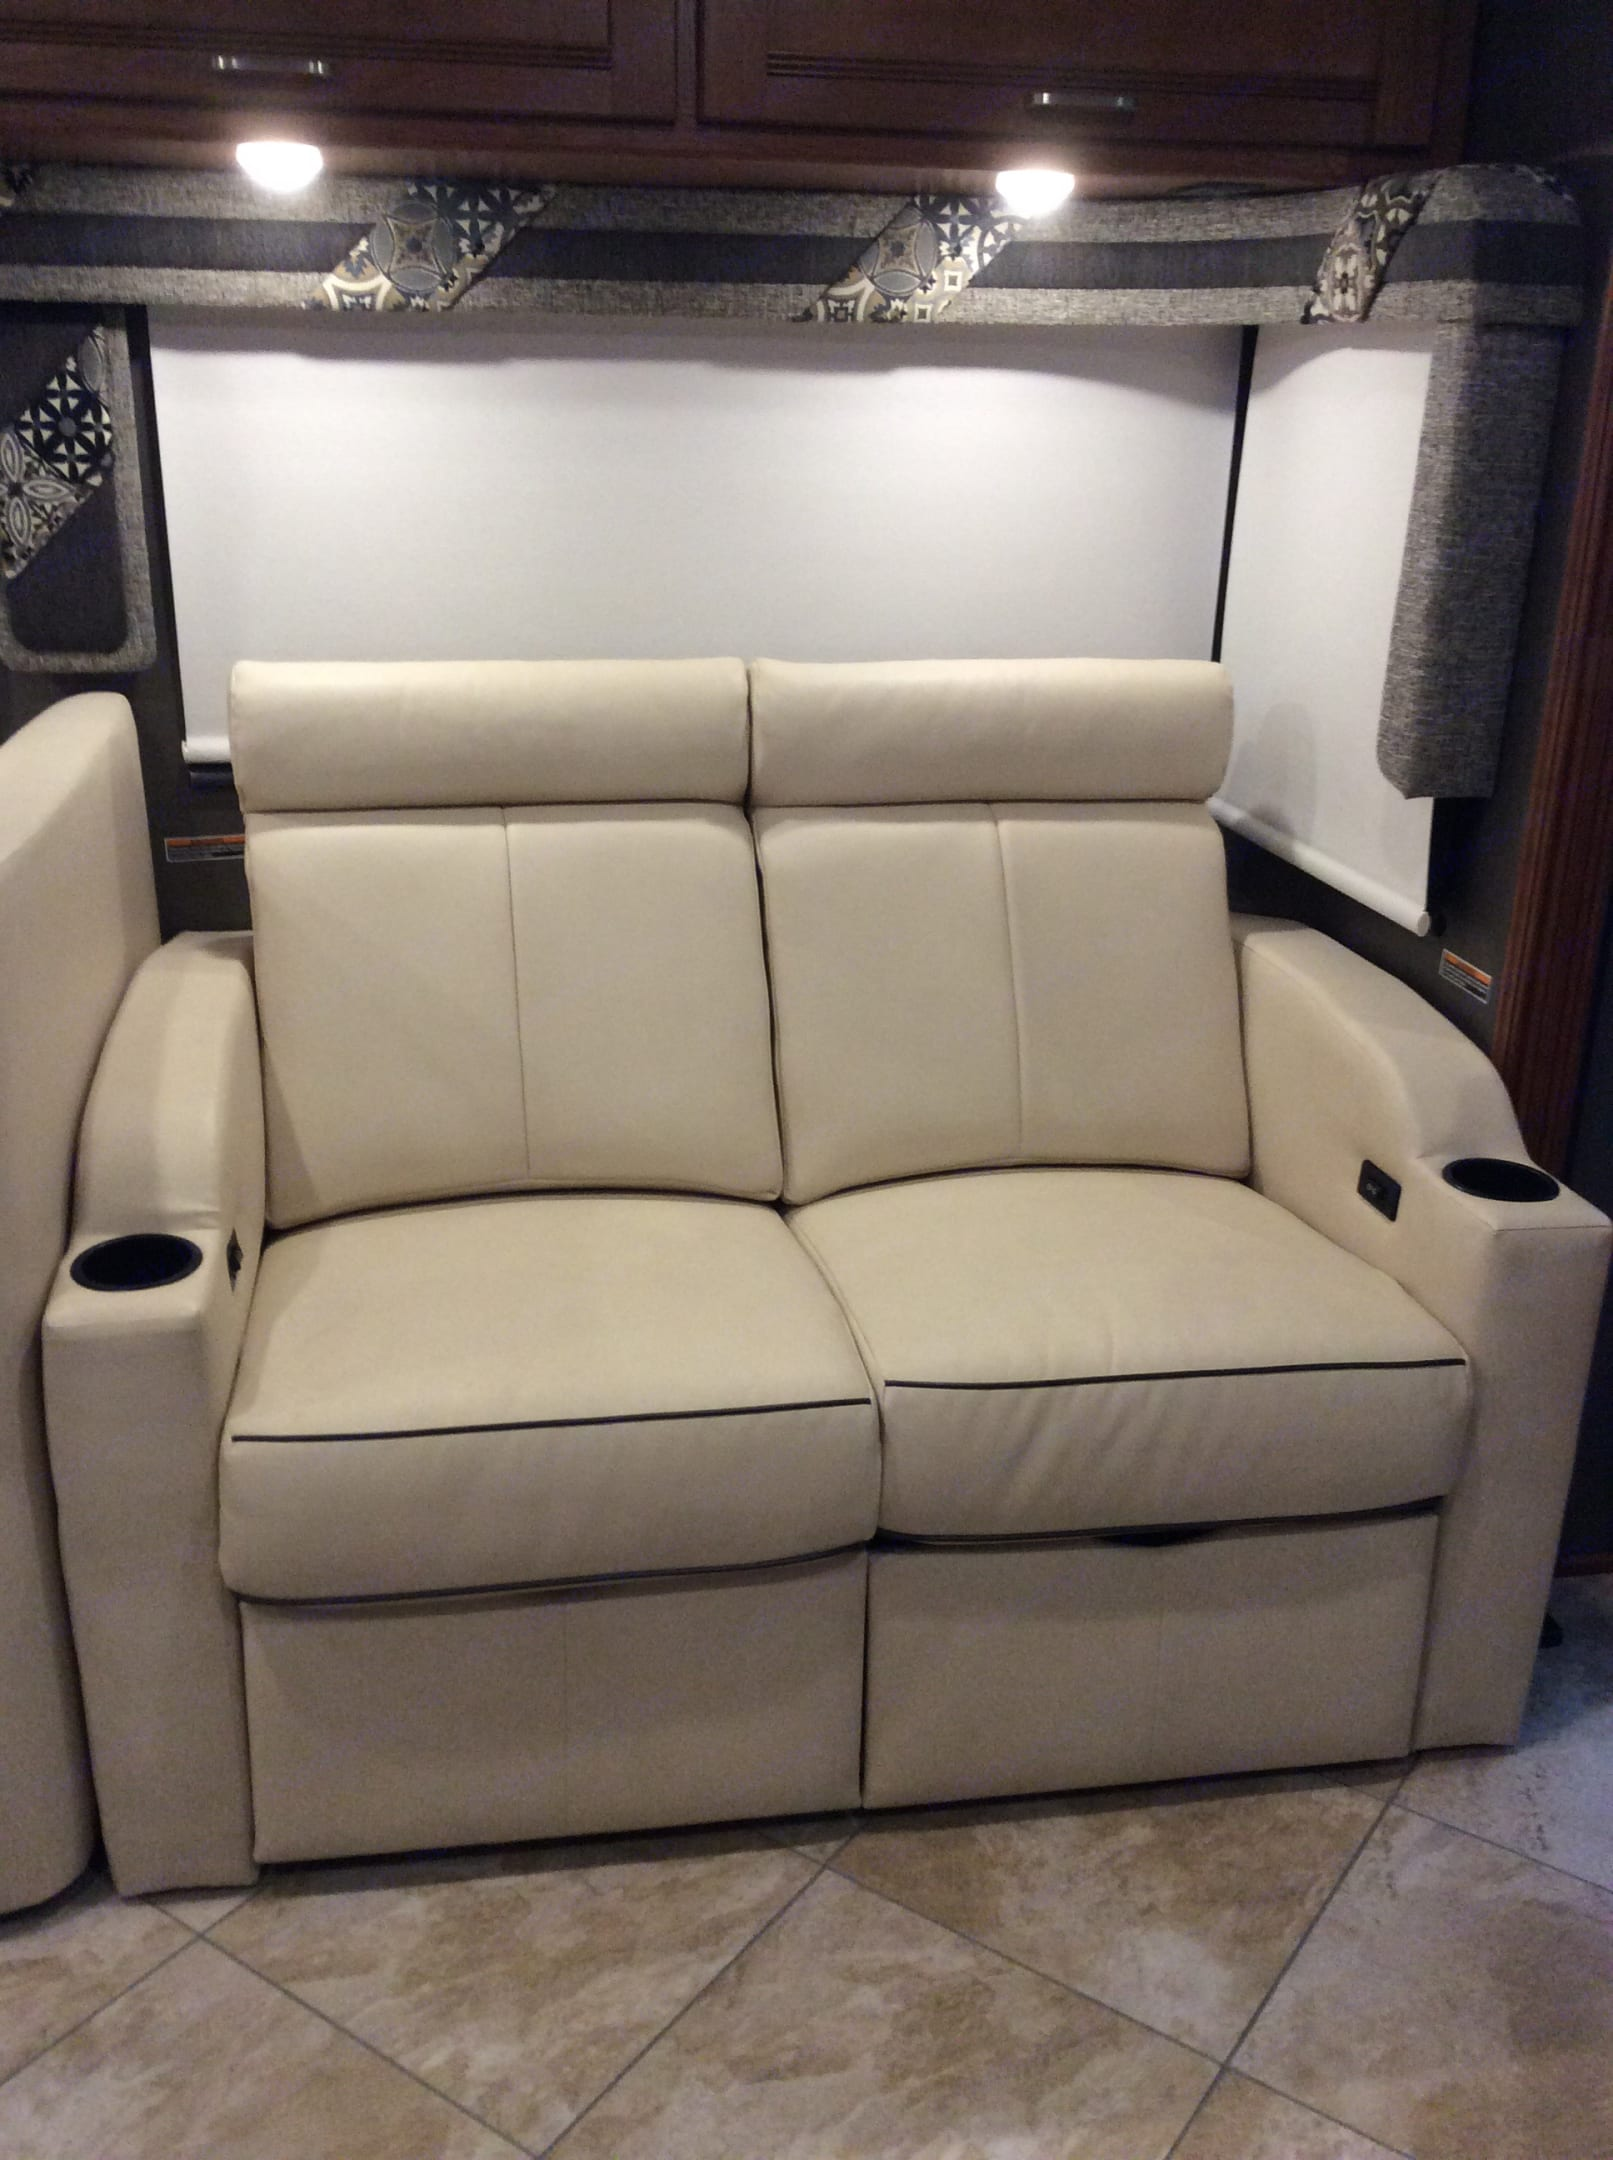 Comfortable reclining seats that converts into a sleeping area. Winnebago Forza 2017